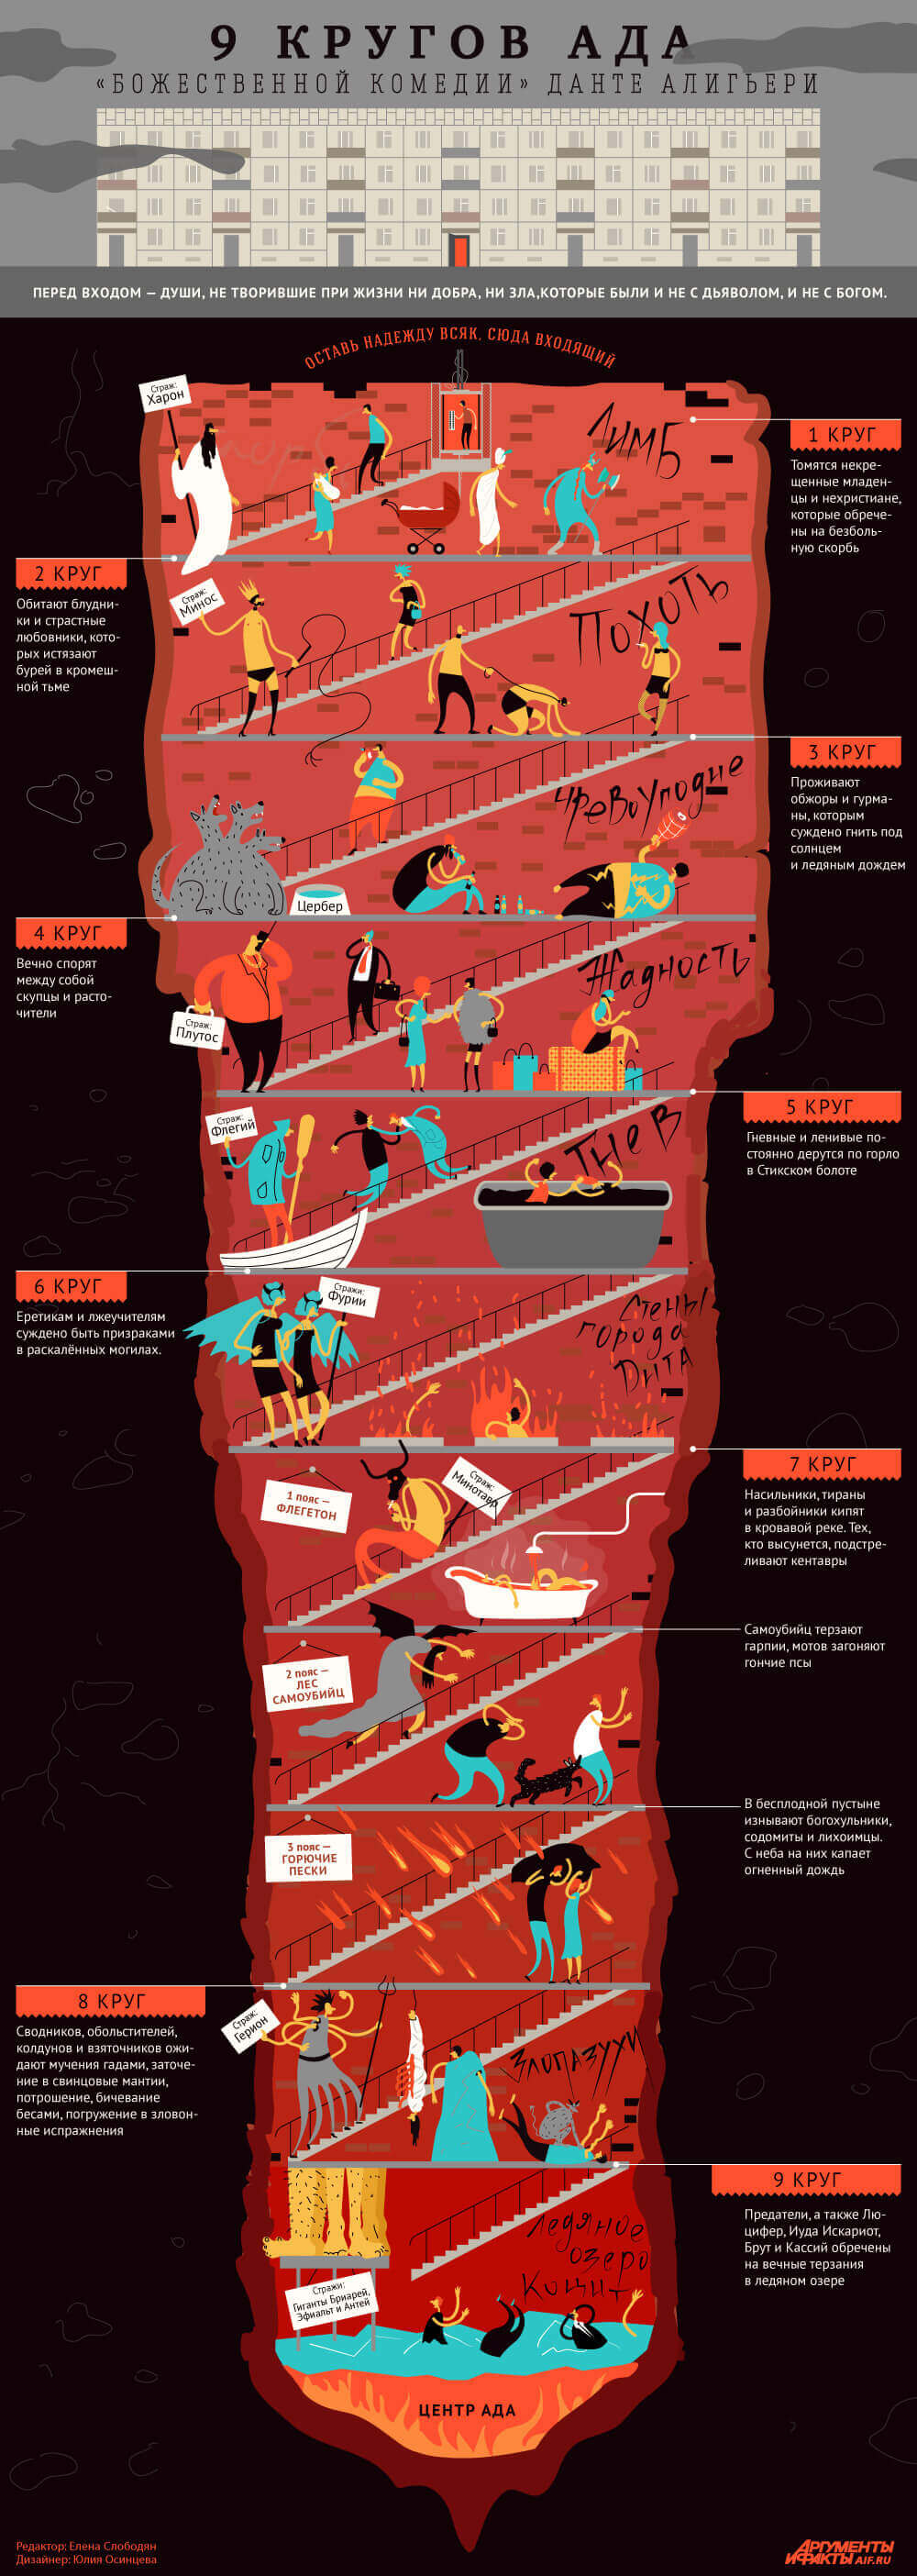 dantes inferno the levels of hell essay According to dante's inferno, which circle of hell is your favorite  this essay  provides an analysis of dante's work, and an answer to the.